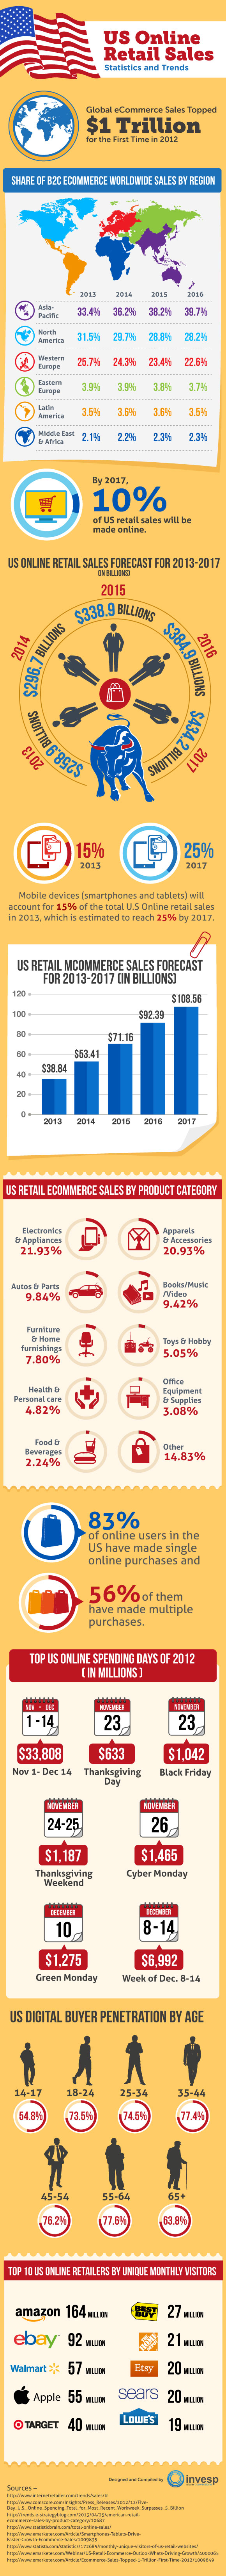 us-online-retail-sales-statistics-and-trends-infographic_51d840234fe51.jpg